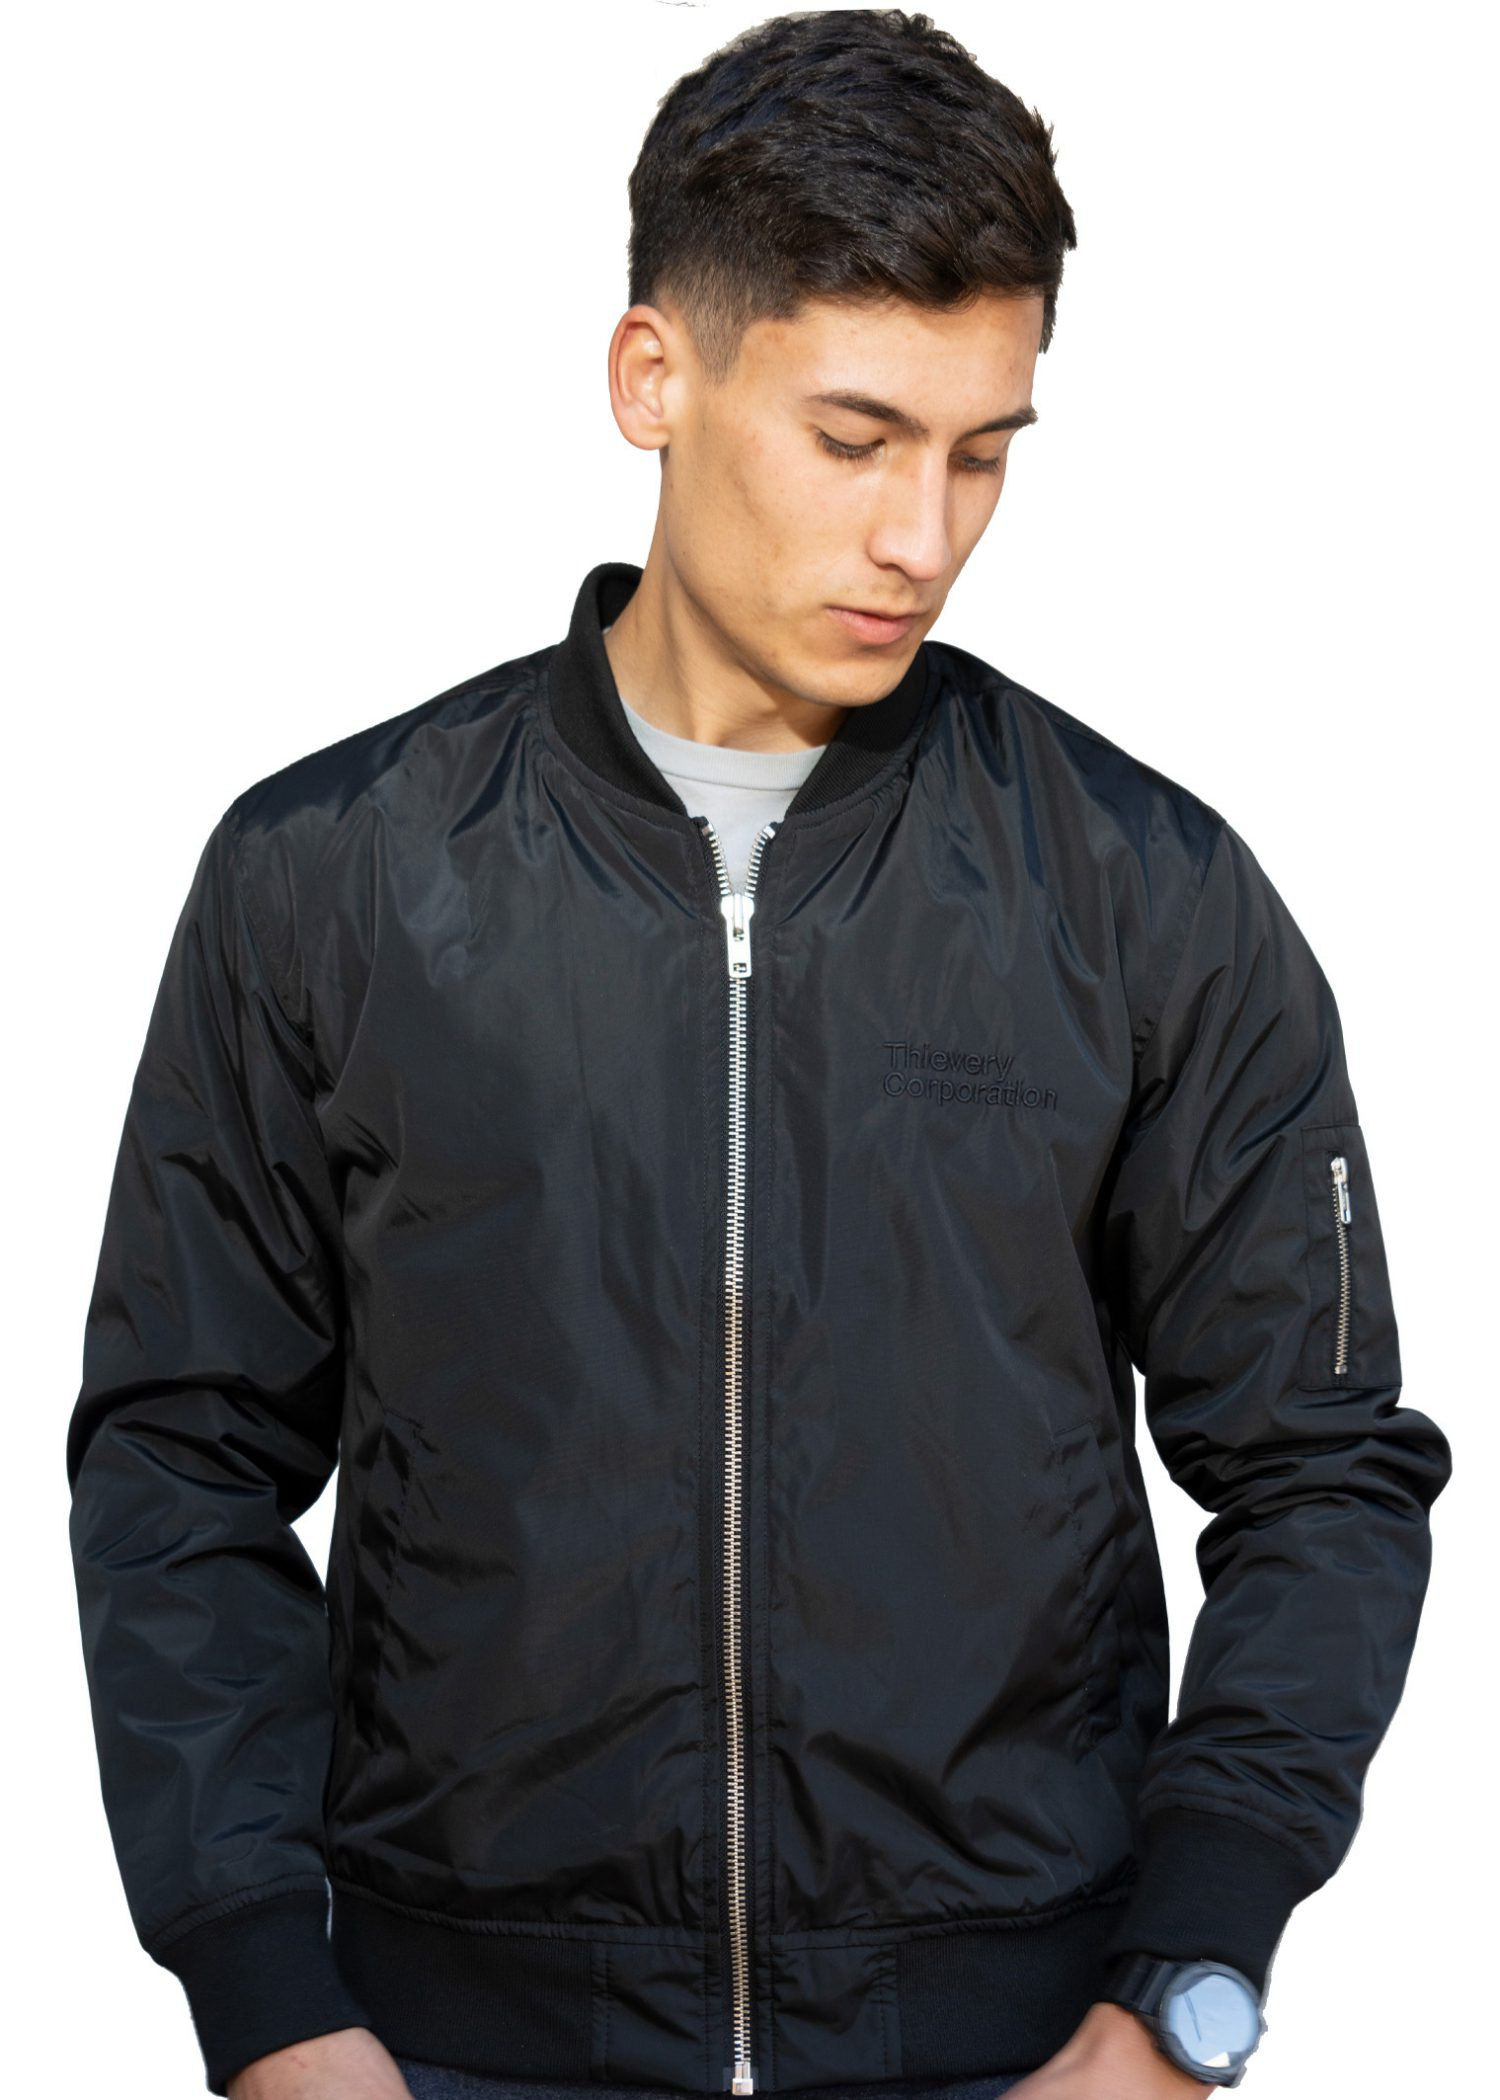 GG 900 FRONT BLK BOMBER- THIEVERY